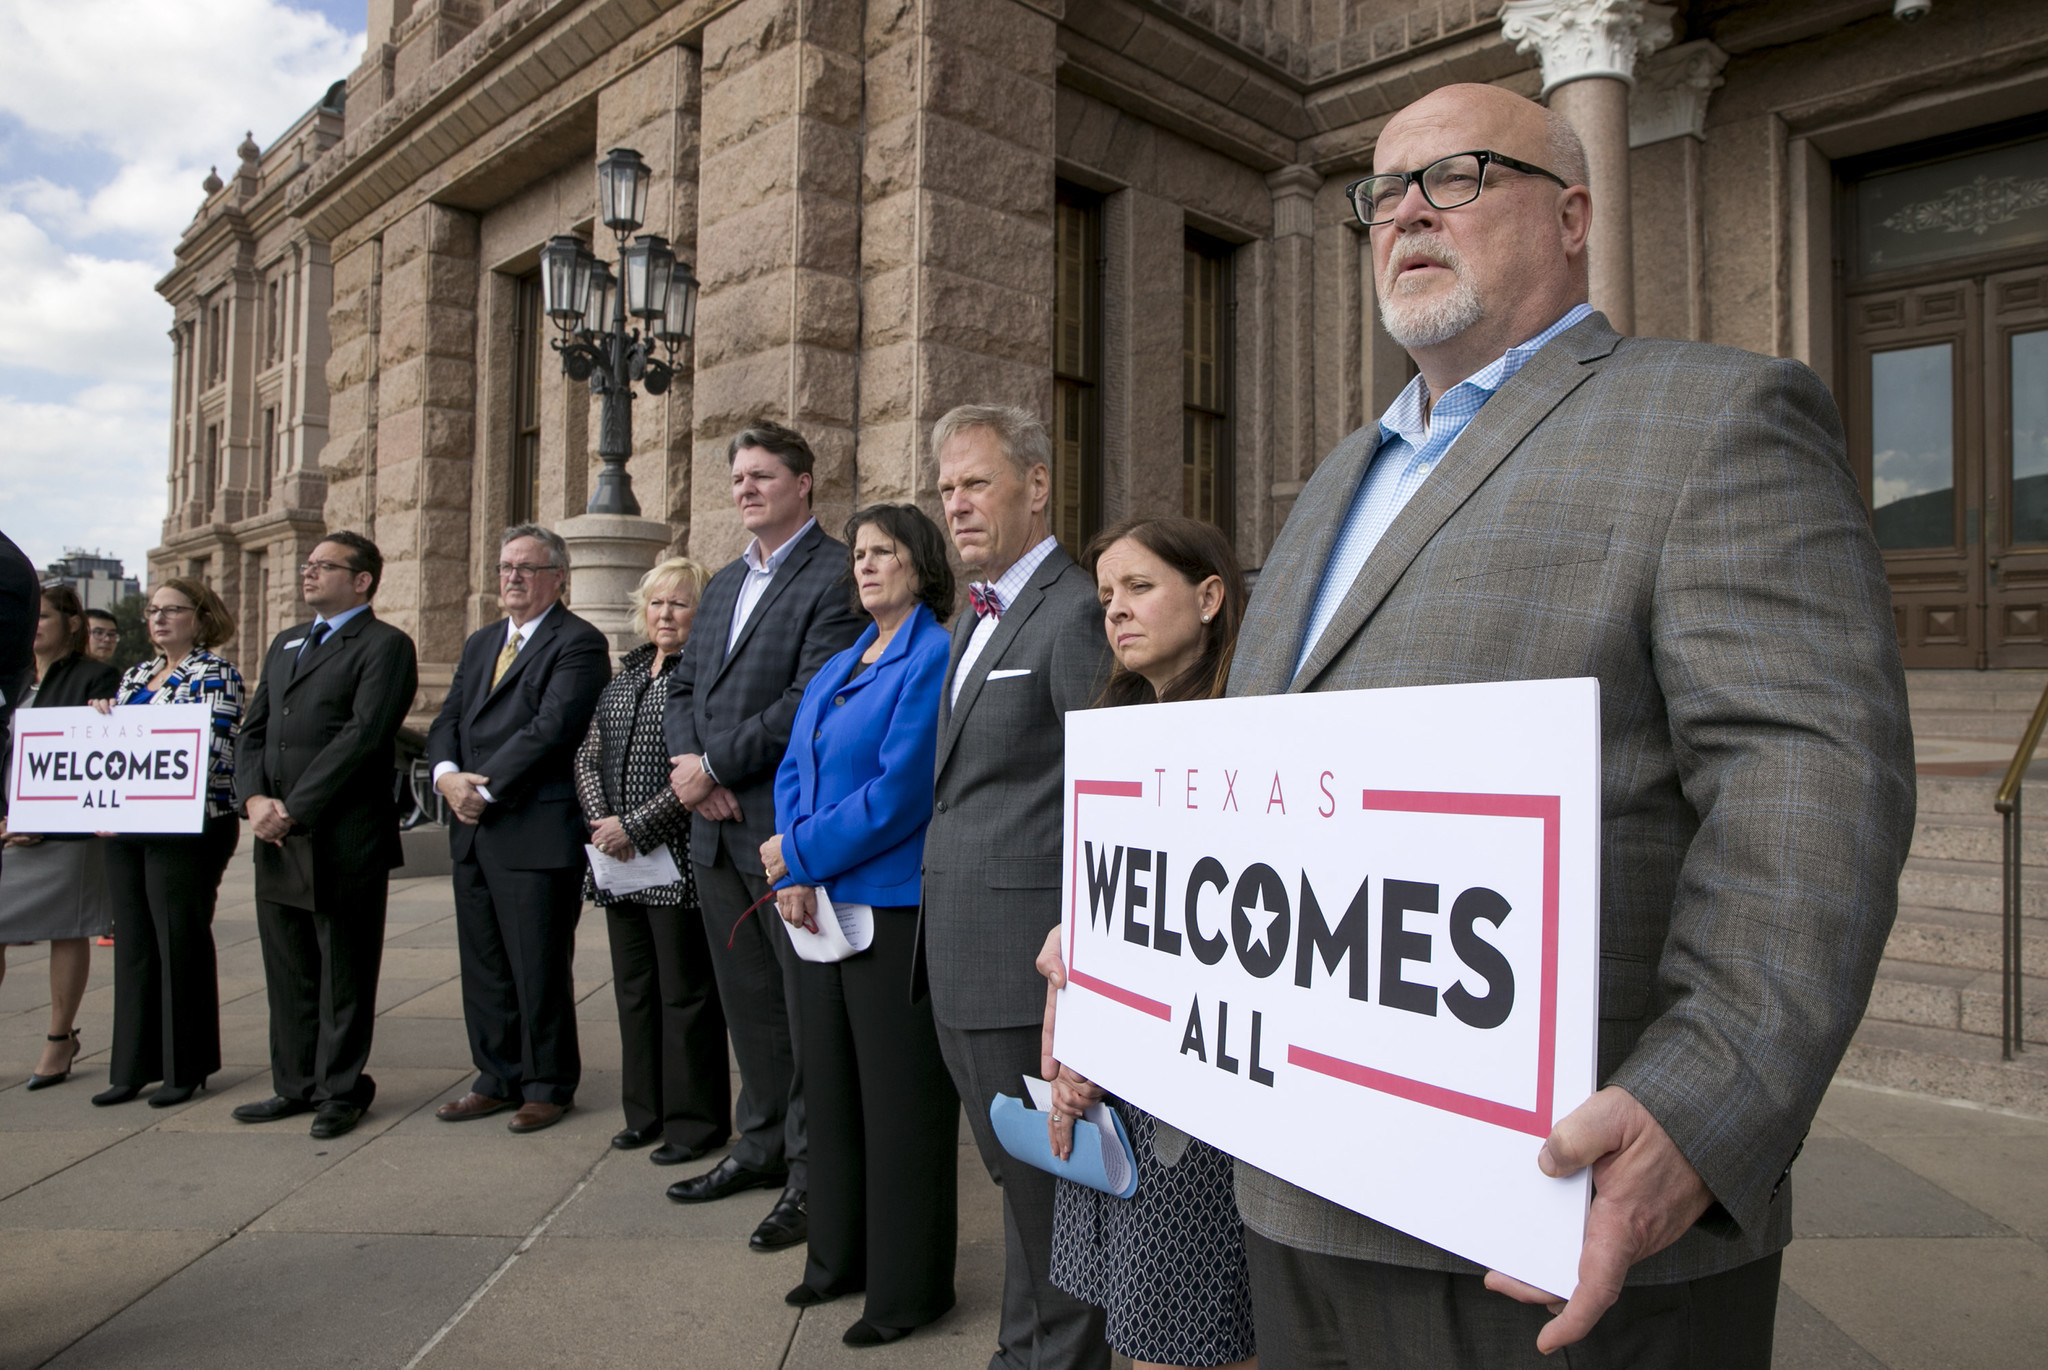 Bathroom Bill Texas nba joins nfl in warning texas over proposed 'bathroom bill